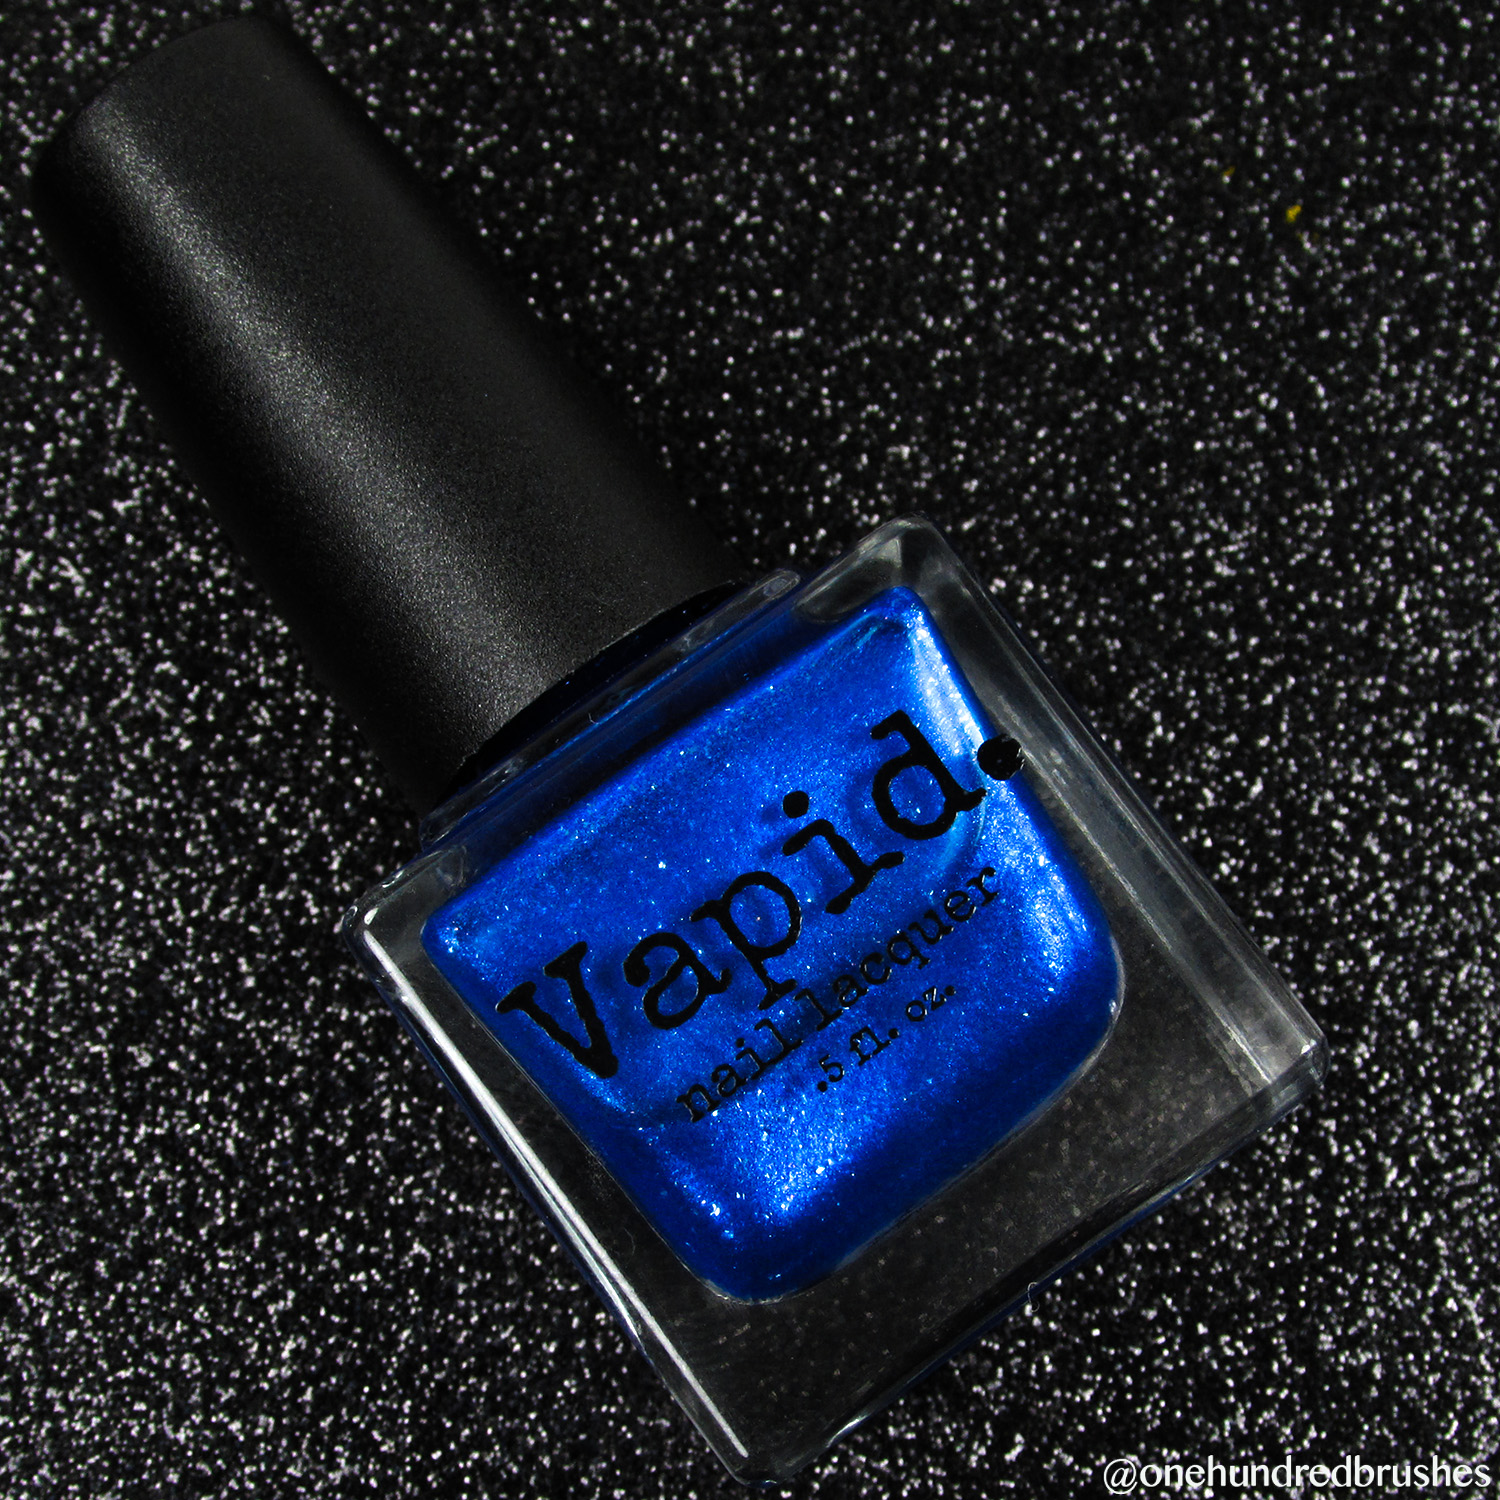 Trite - bottle - Vapid Lacquer - April 2018 - Spring release - cobalt blue, shimmer, metallic